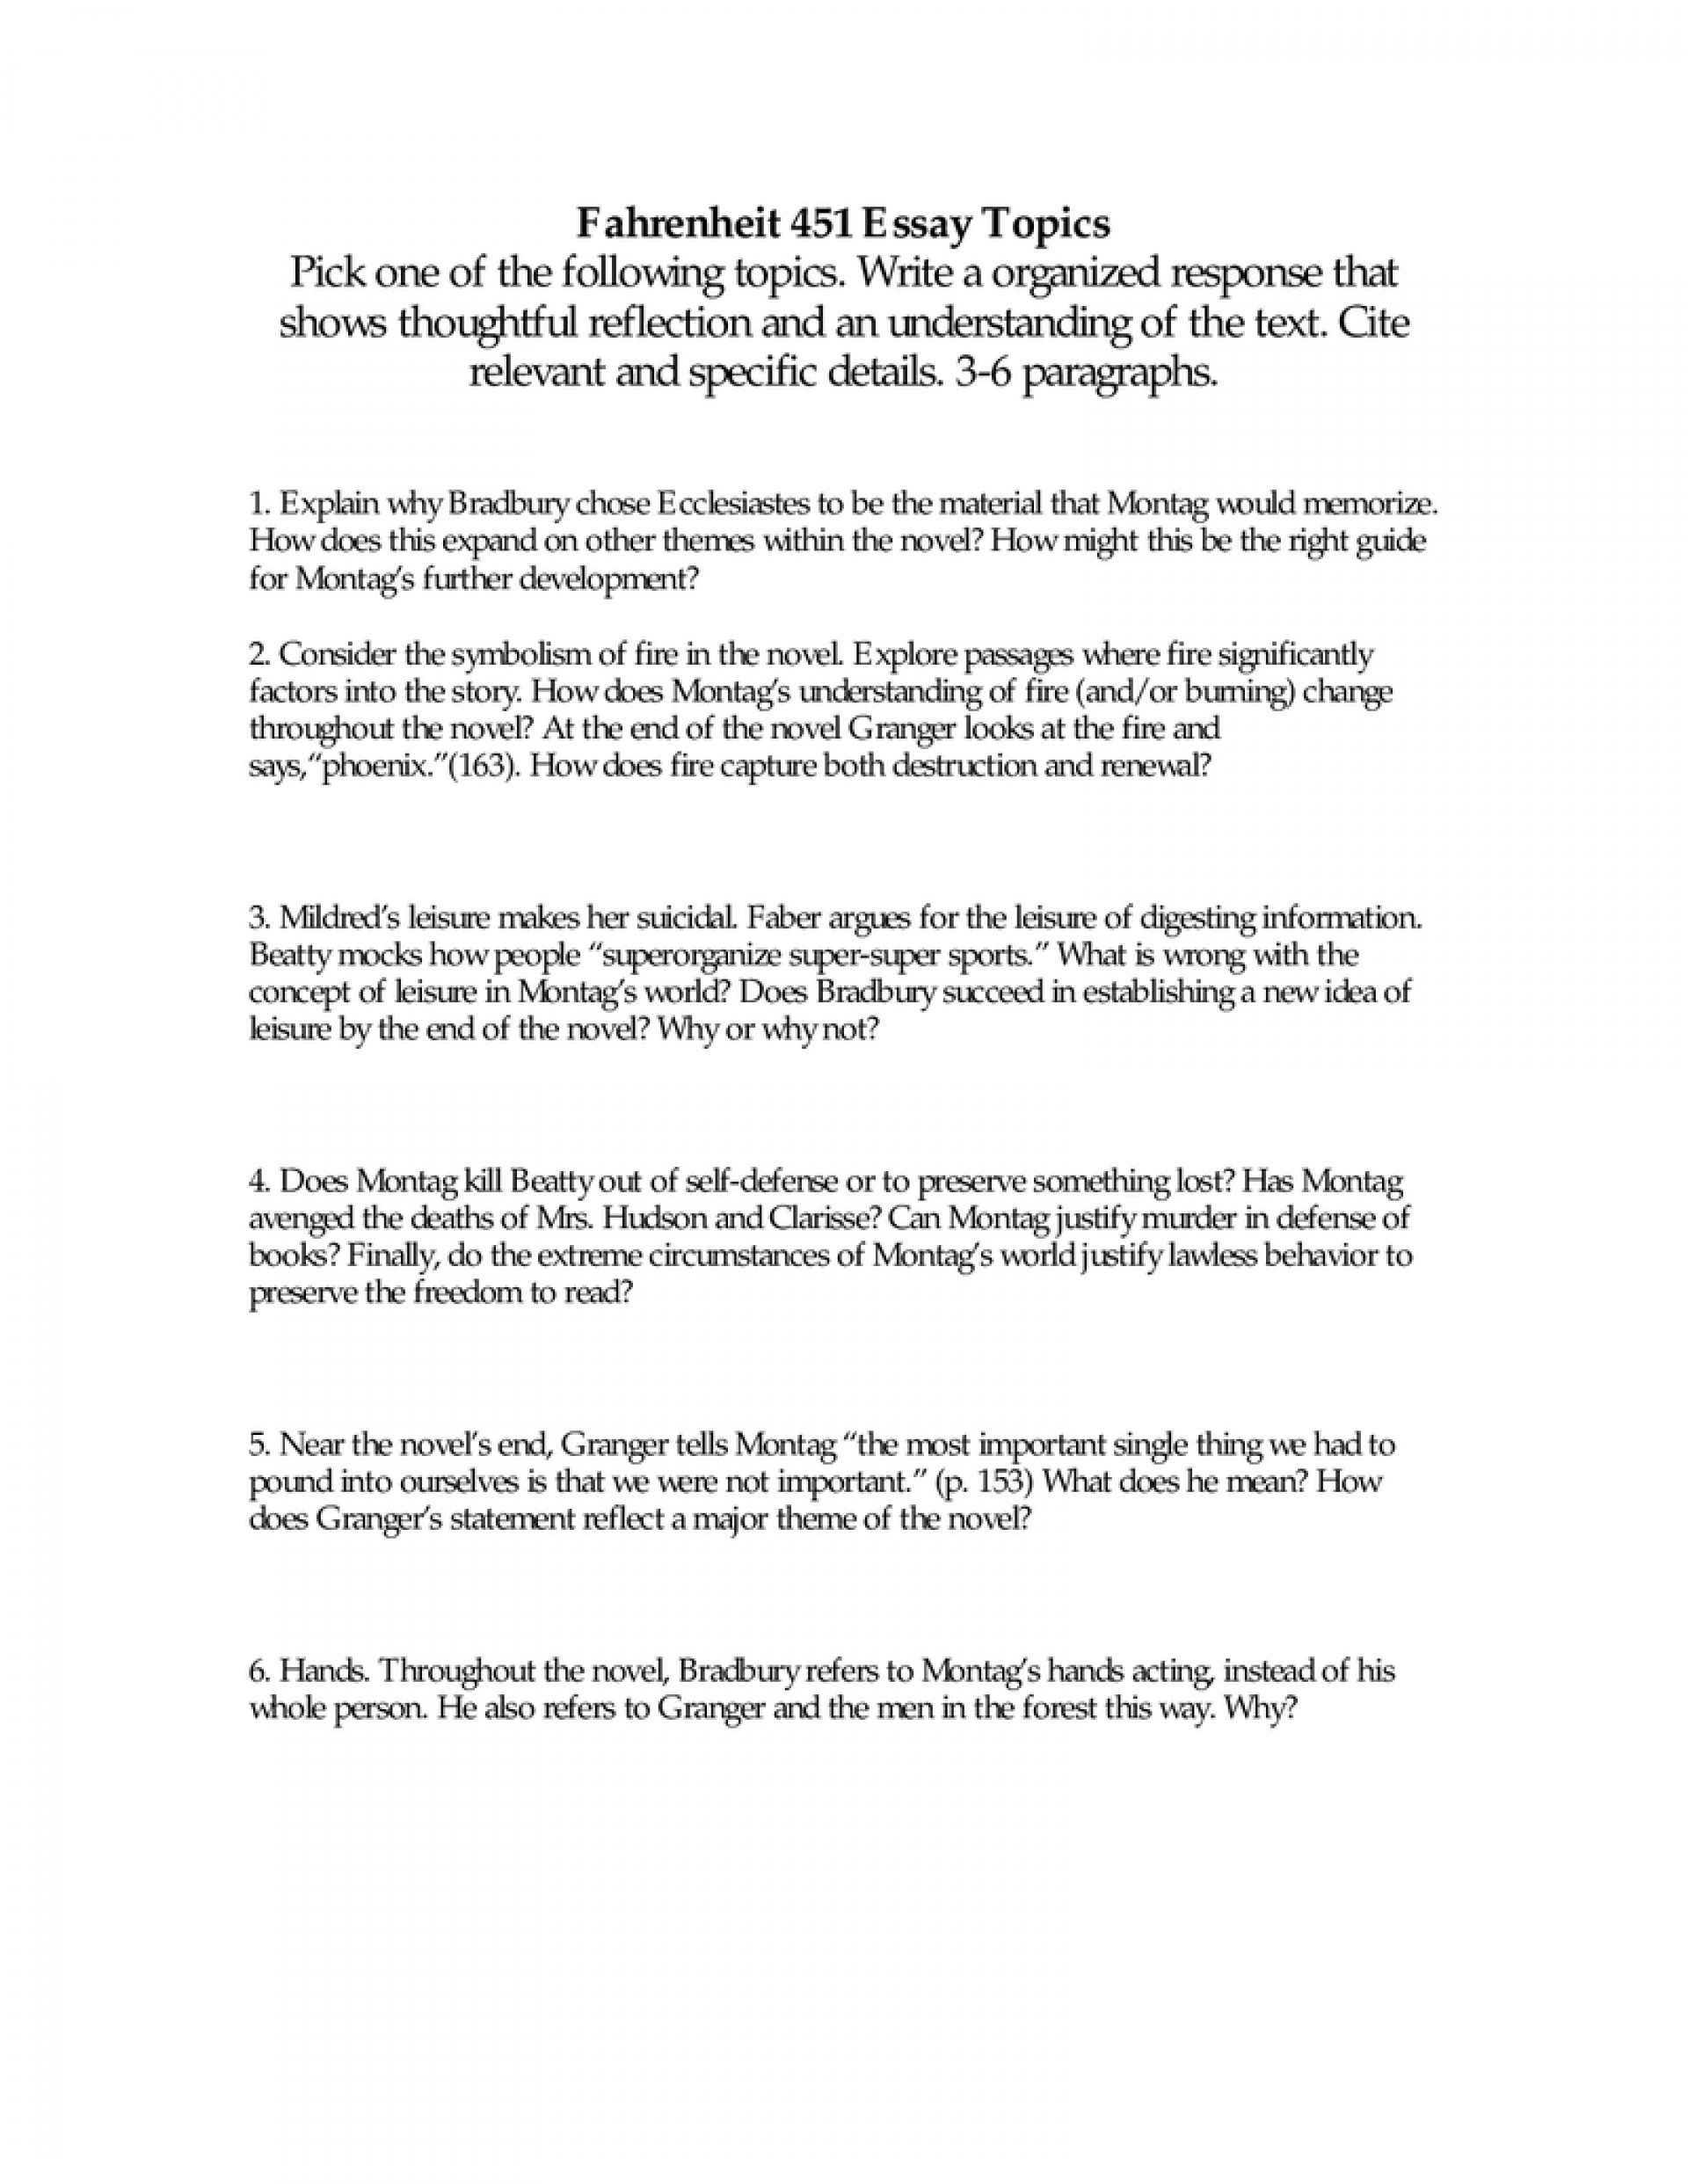 008 Research Paper Good Topics For 10th Grade English Awesome 1920